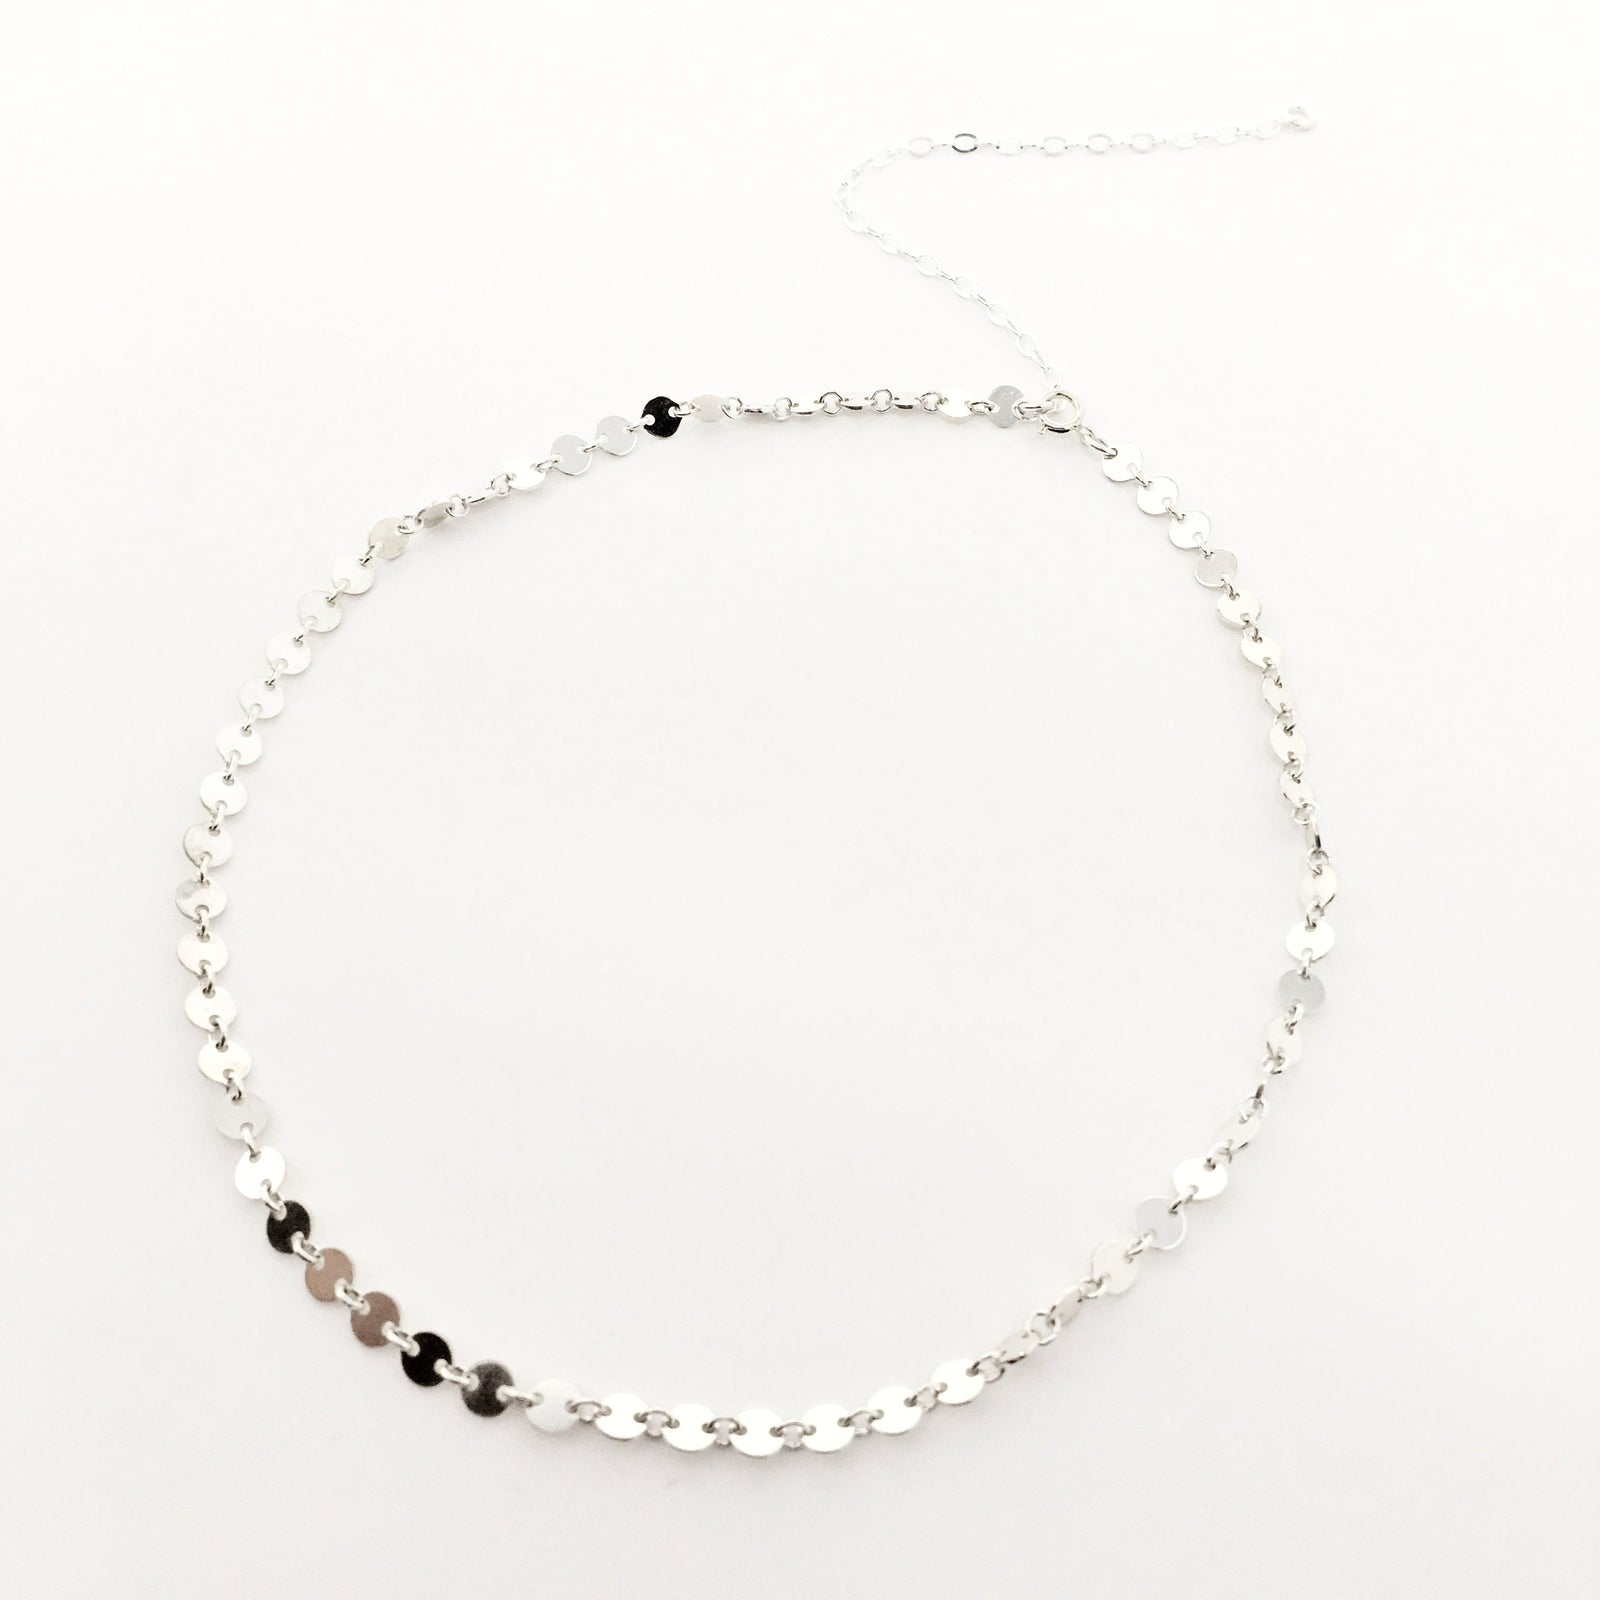 DISK CHAIN NECKLACE | STERLING SILVER